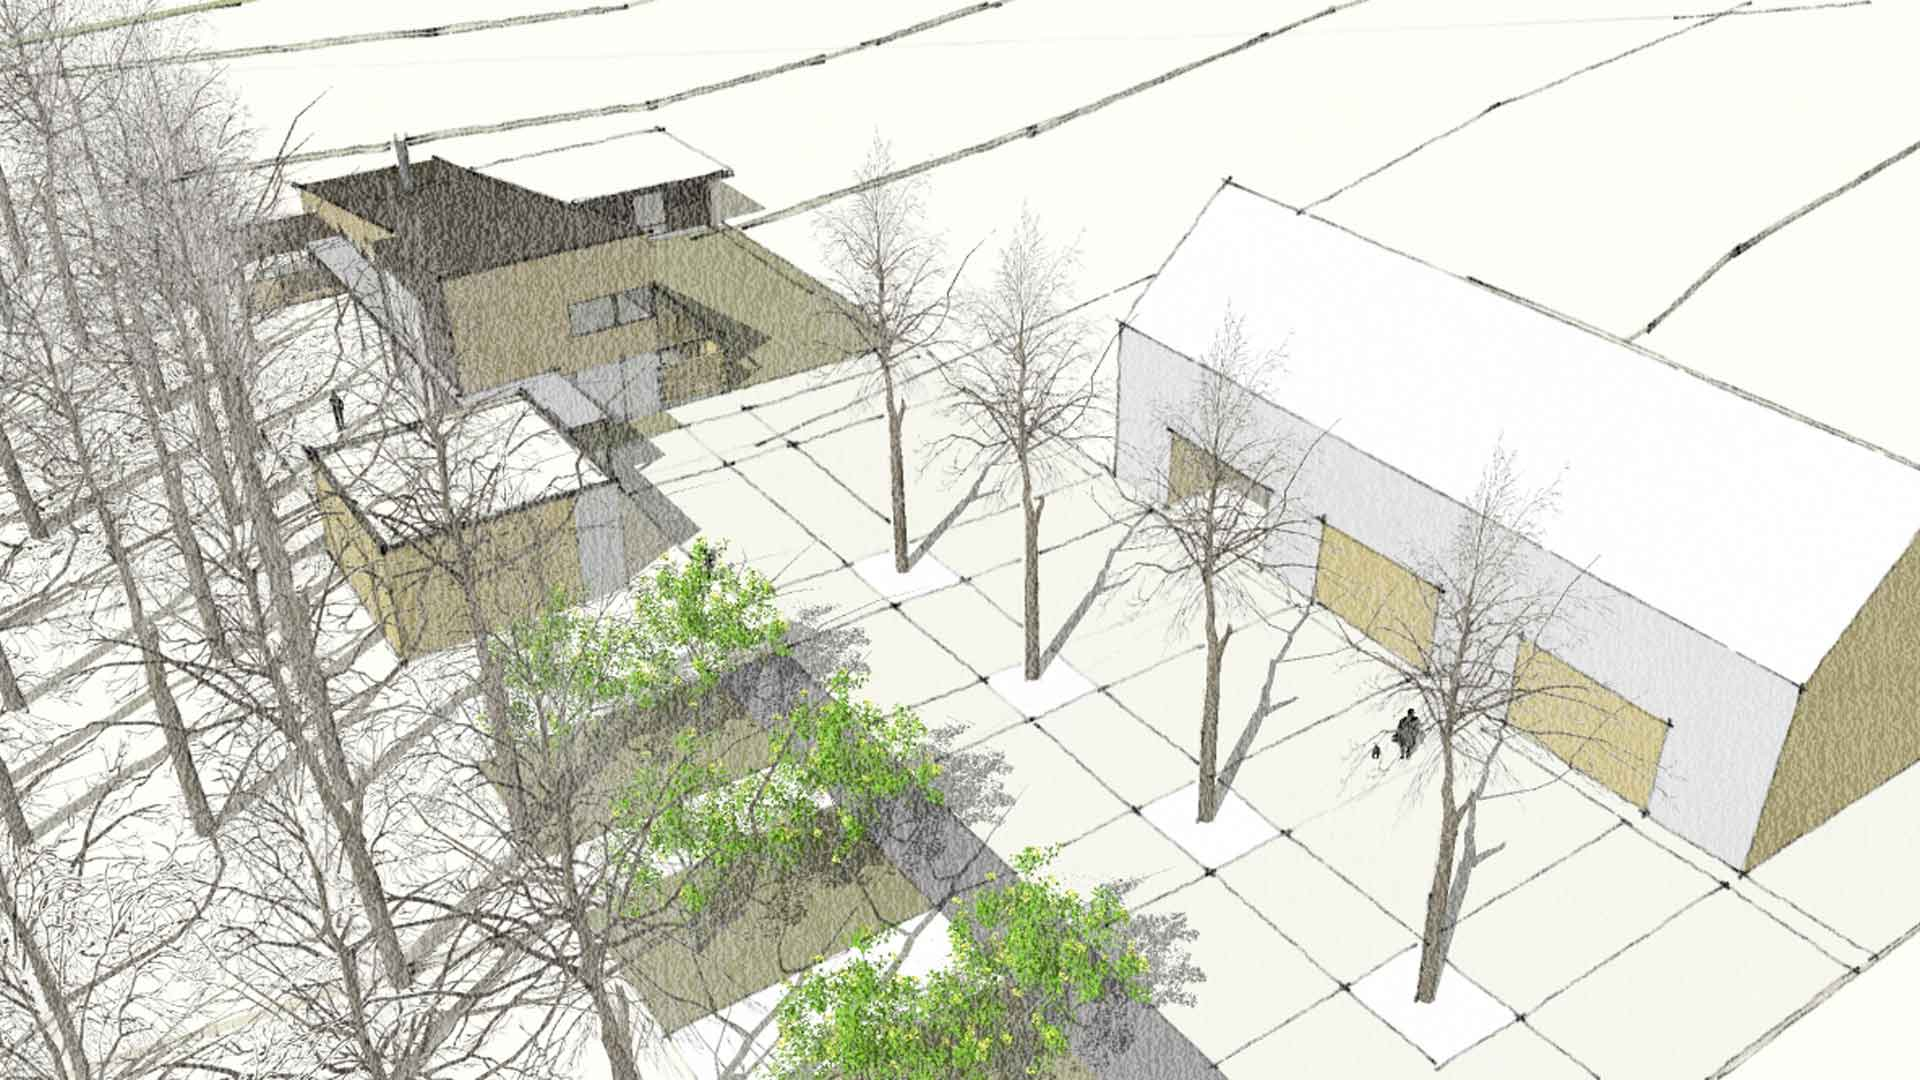 3D Exterior Design Study - Modern Farmhouse Concept - HAUS Architecture, Christopher Short, Indianapolis Architect